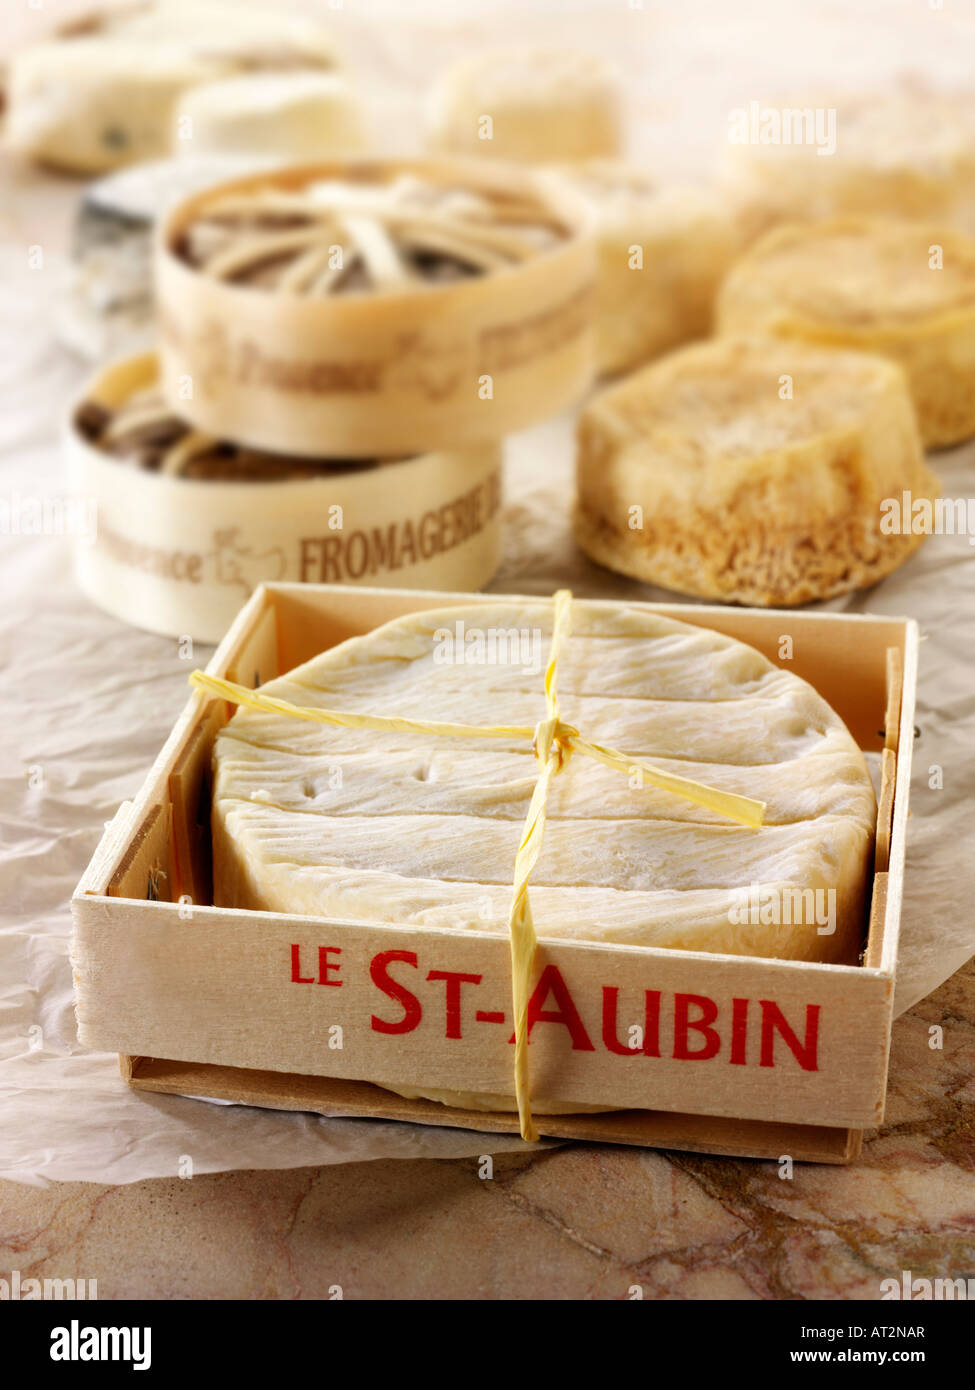 St Aubin soft French cheese in a cheese shop setting - Stock Image